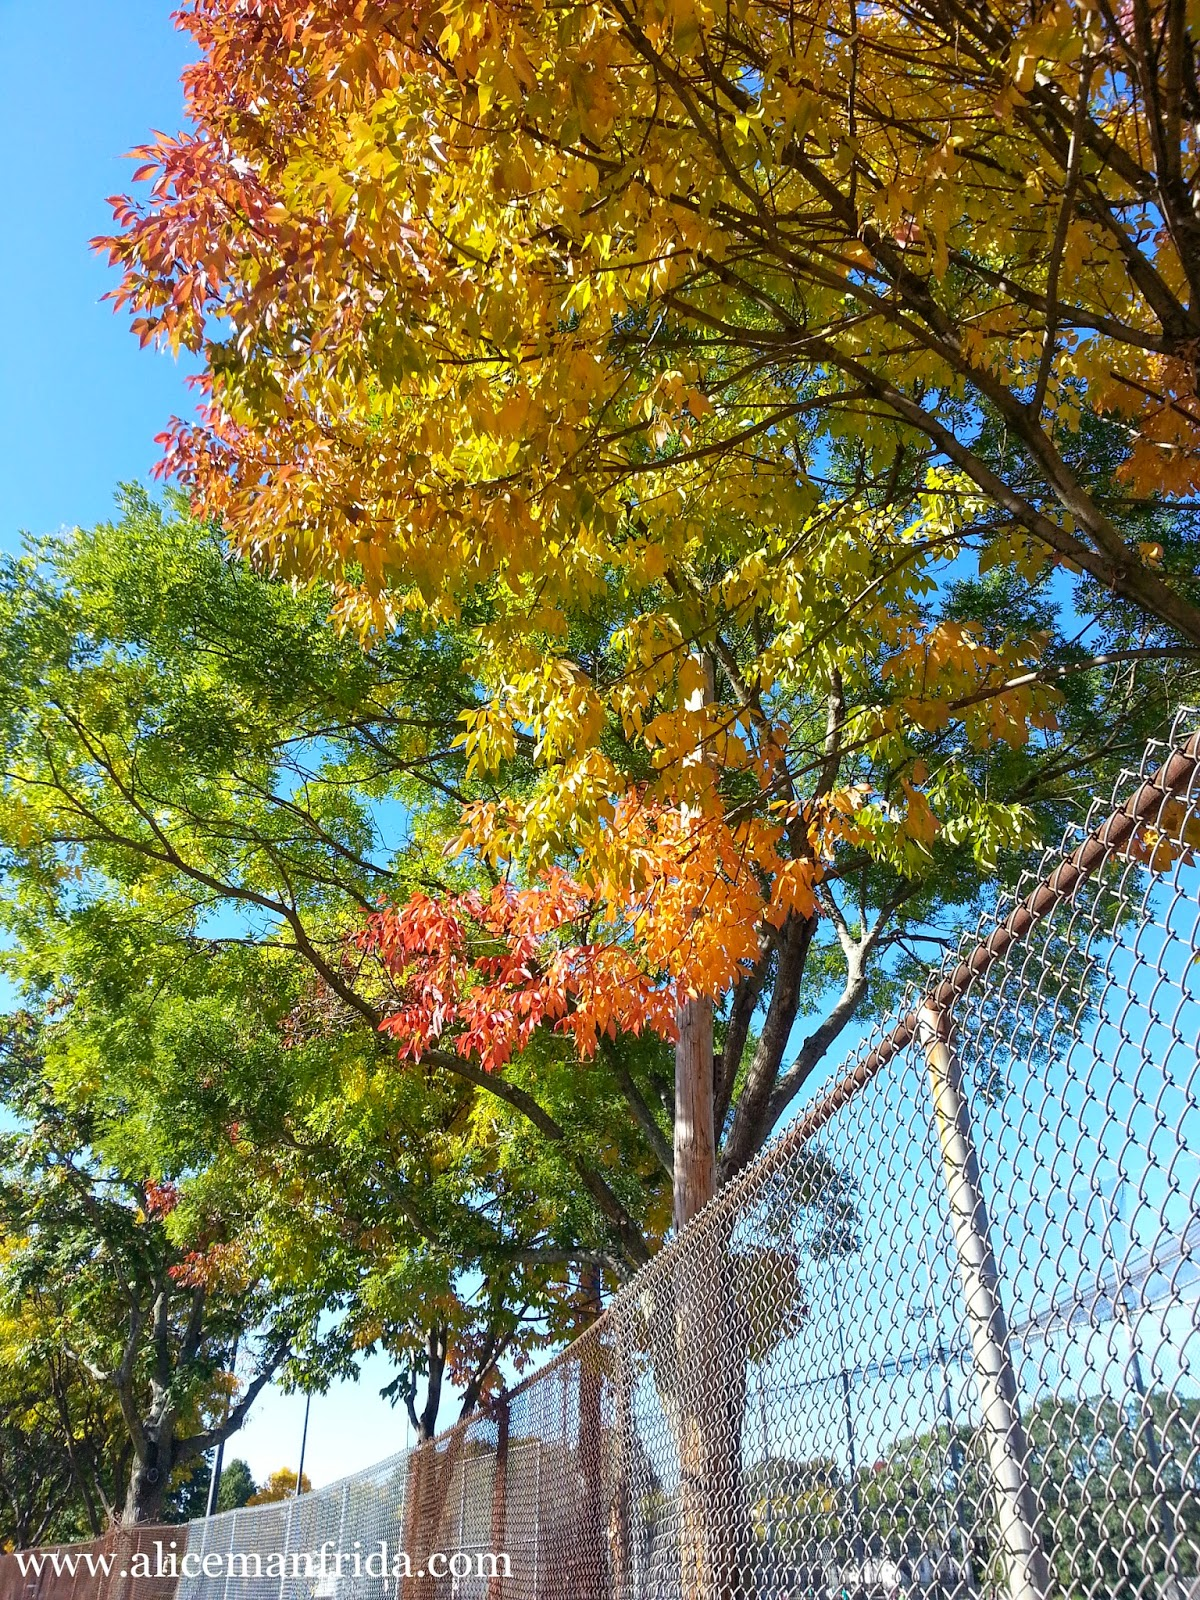 www.alicemanfrida.com, autumn, leaves, colored leaves